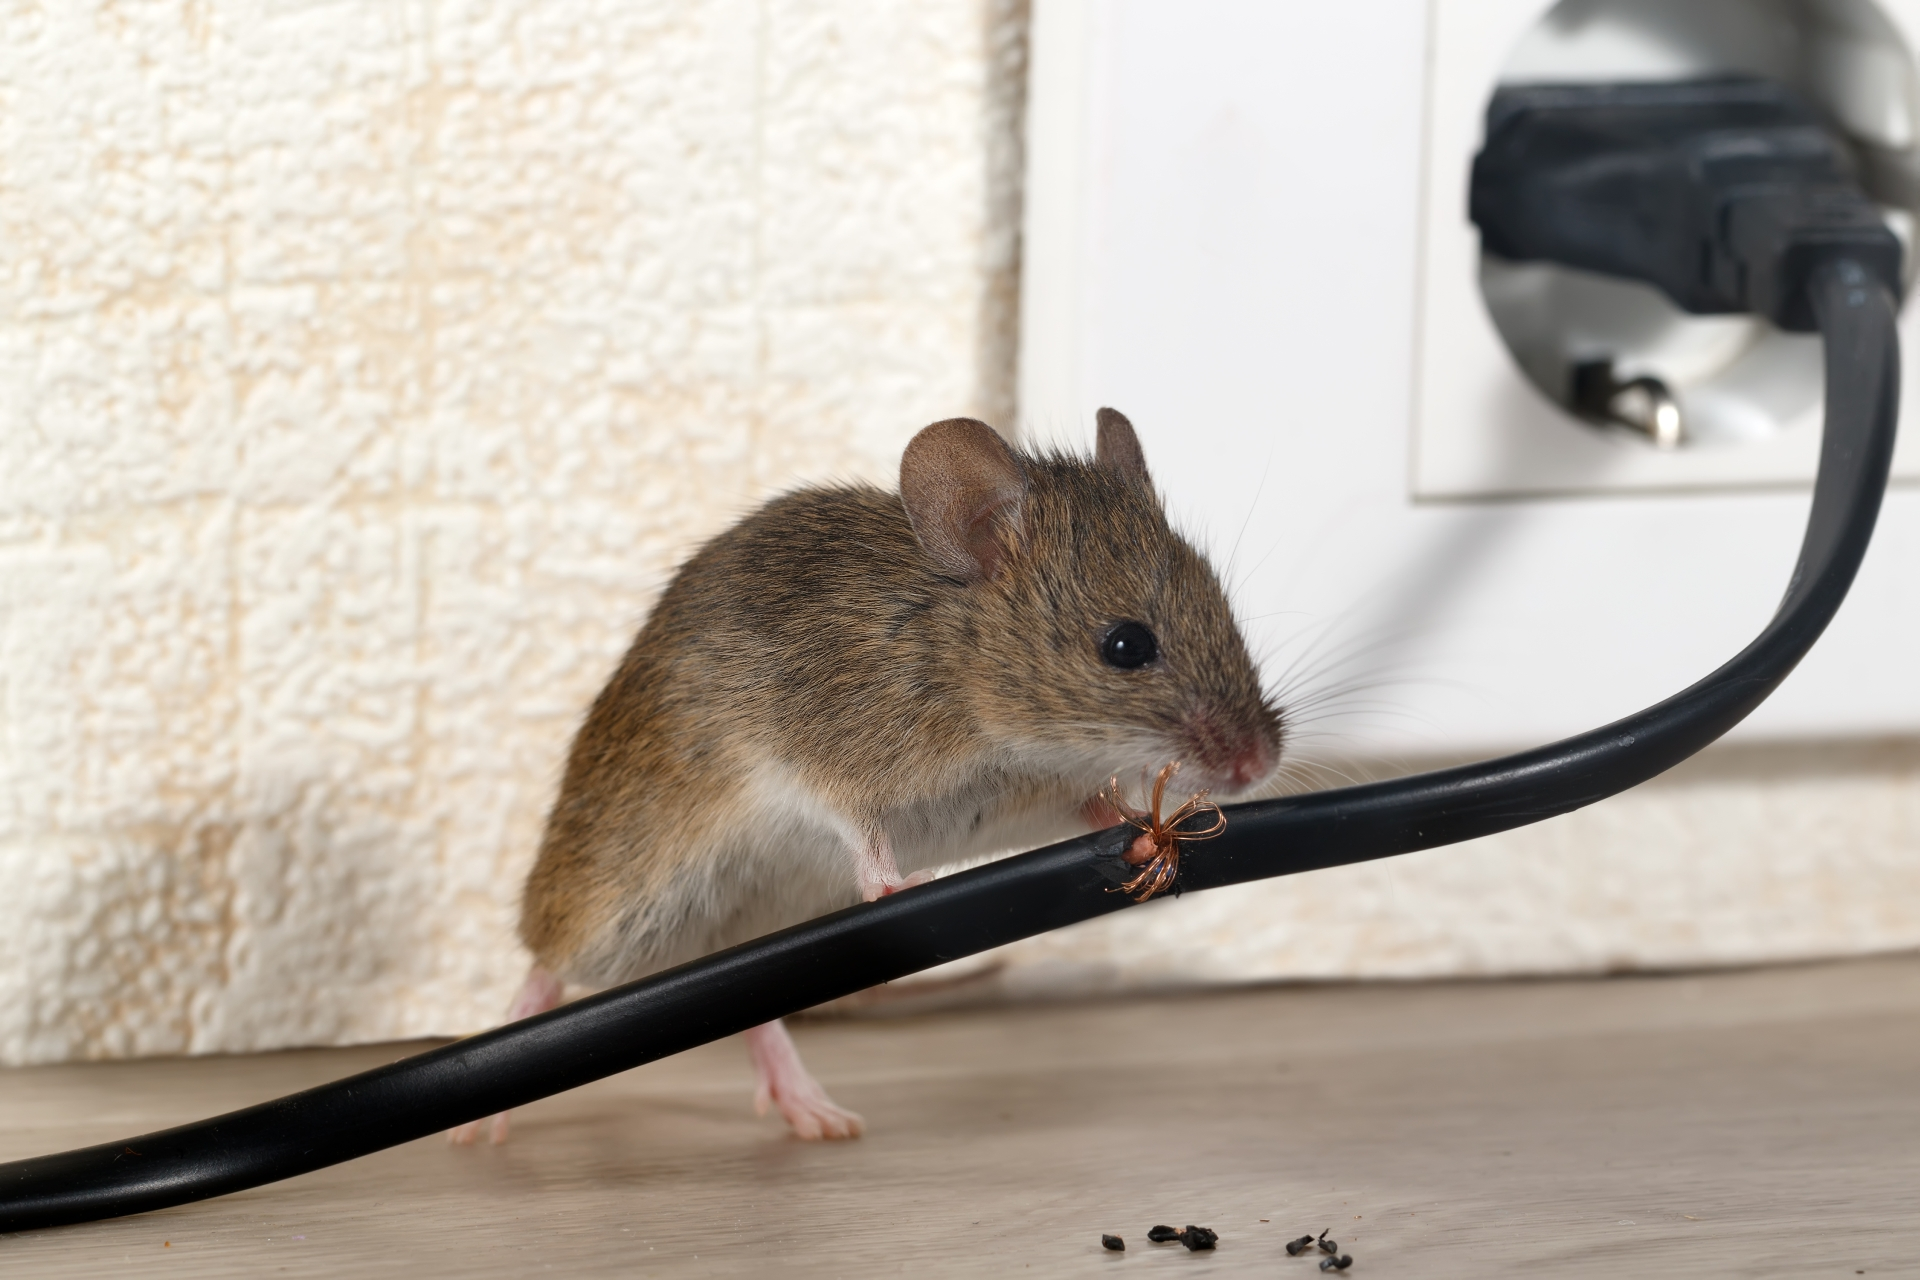 Mice Infestation, Pest Control in Kingston upon Thames, KT1. Call Now 020 8166 9746